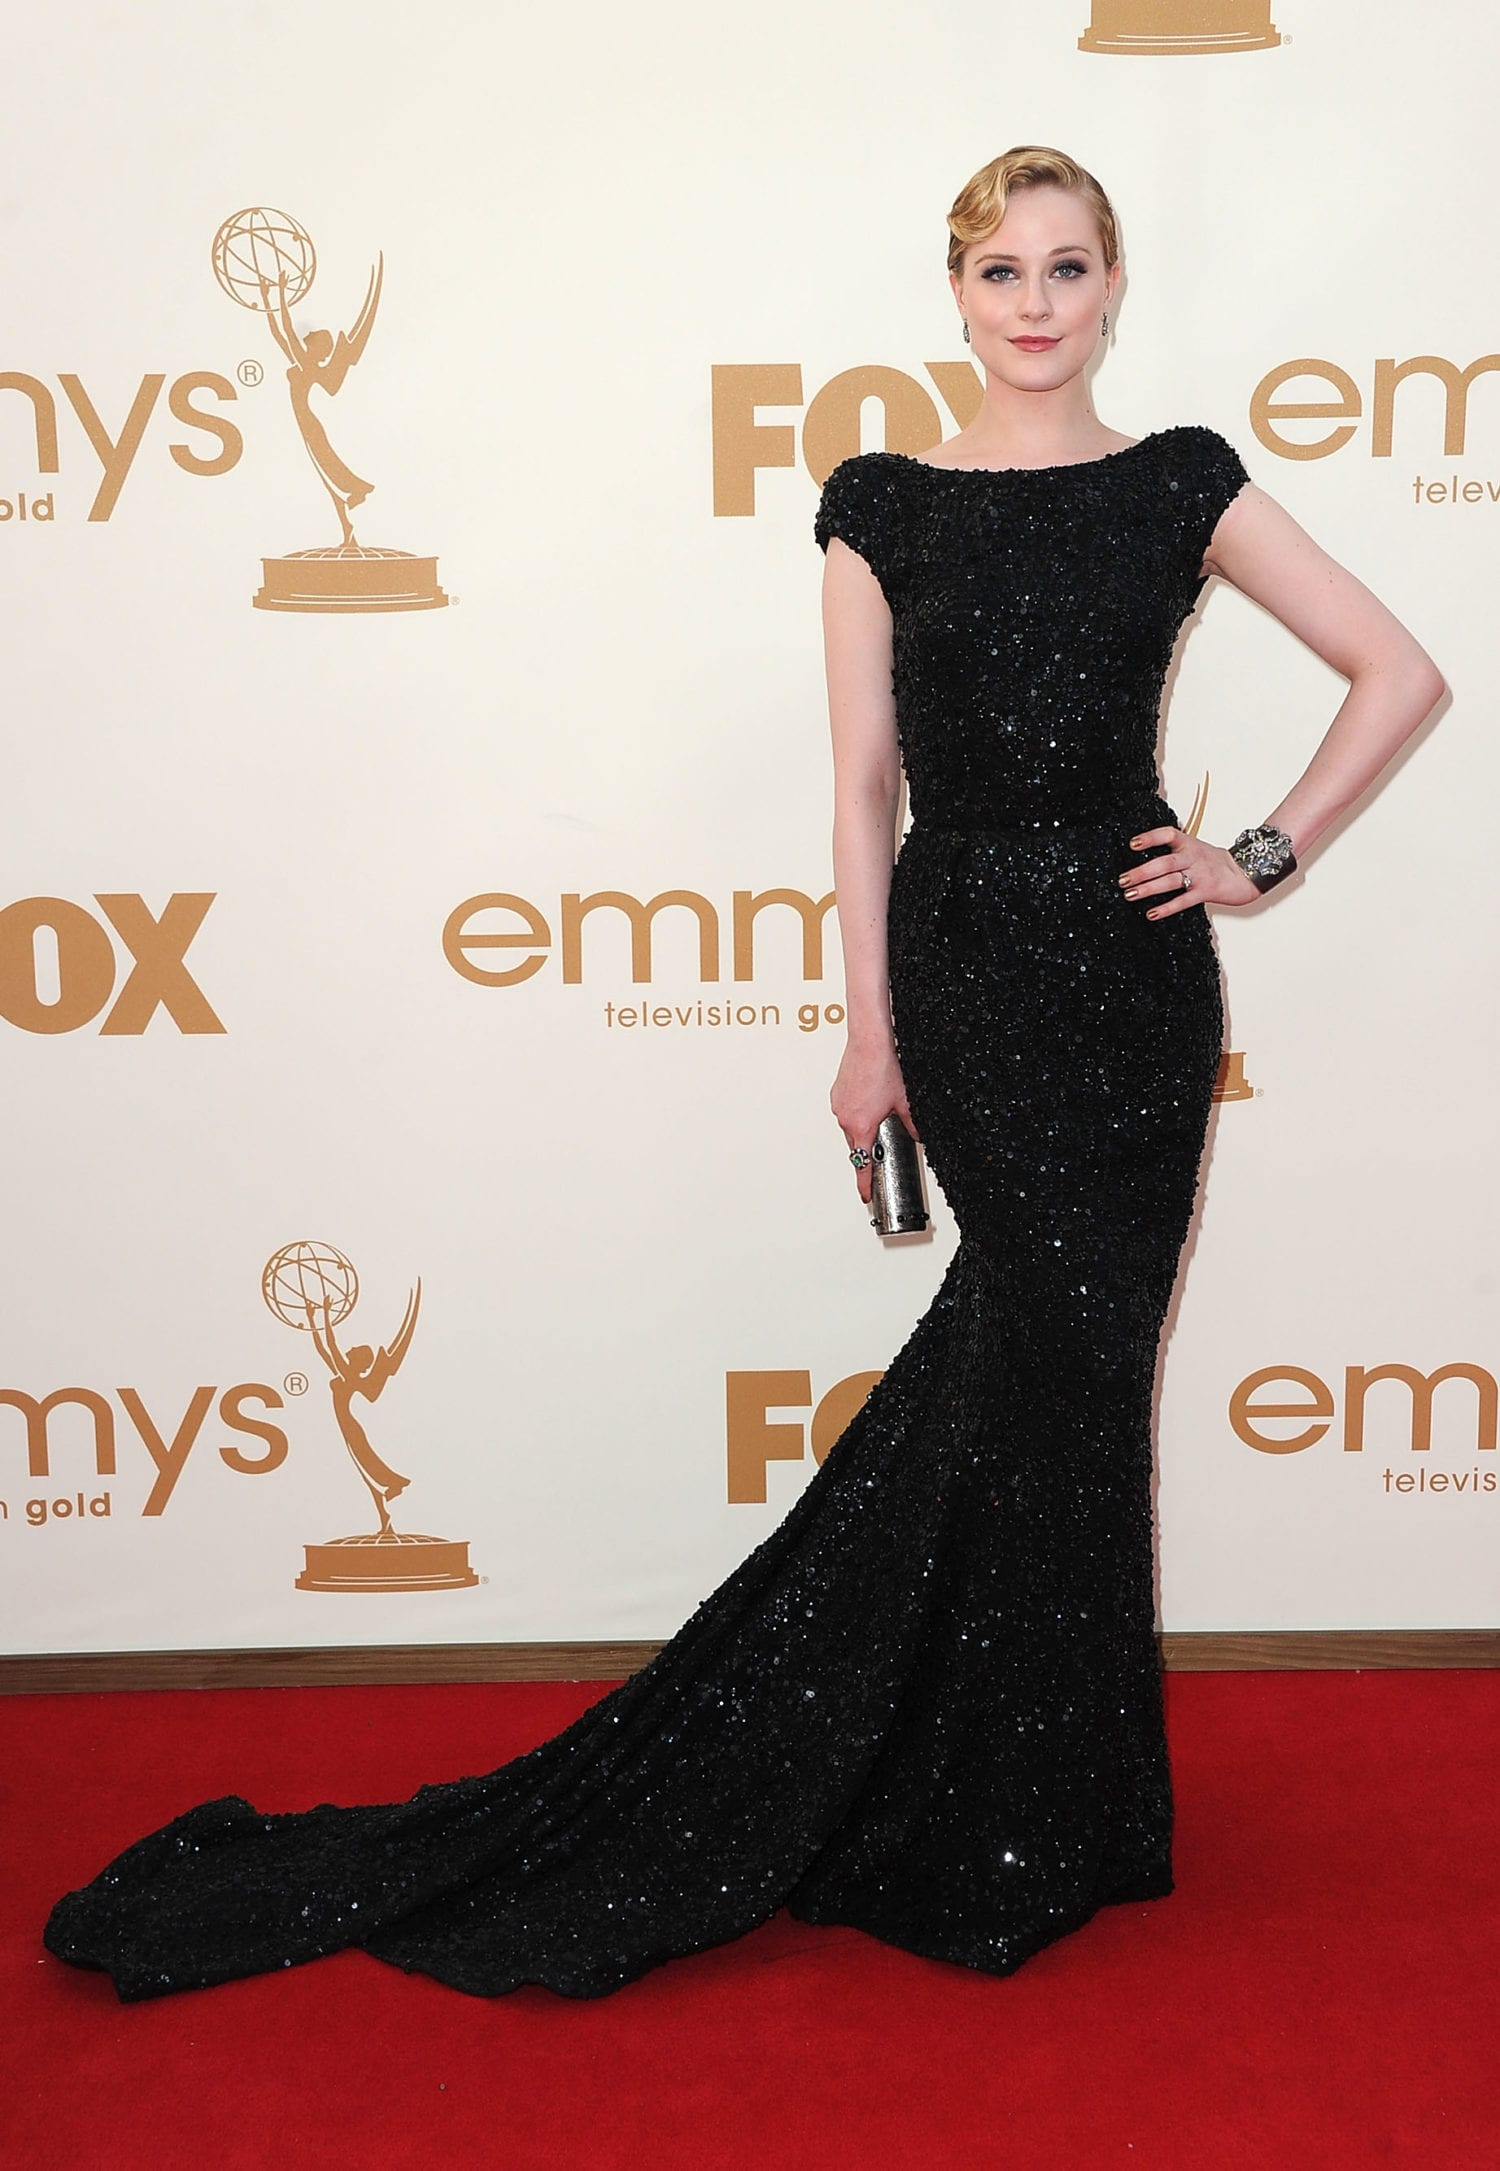 Evan Rachel Wood 2011 emmys photo